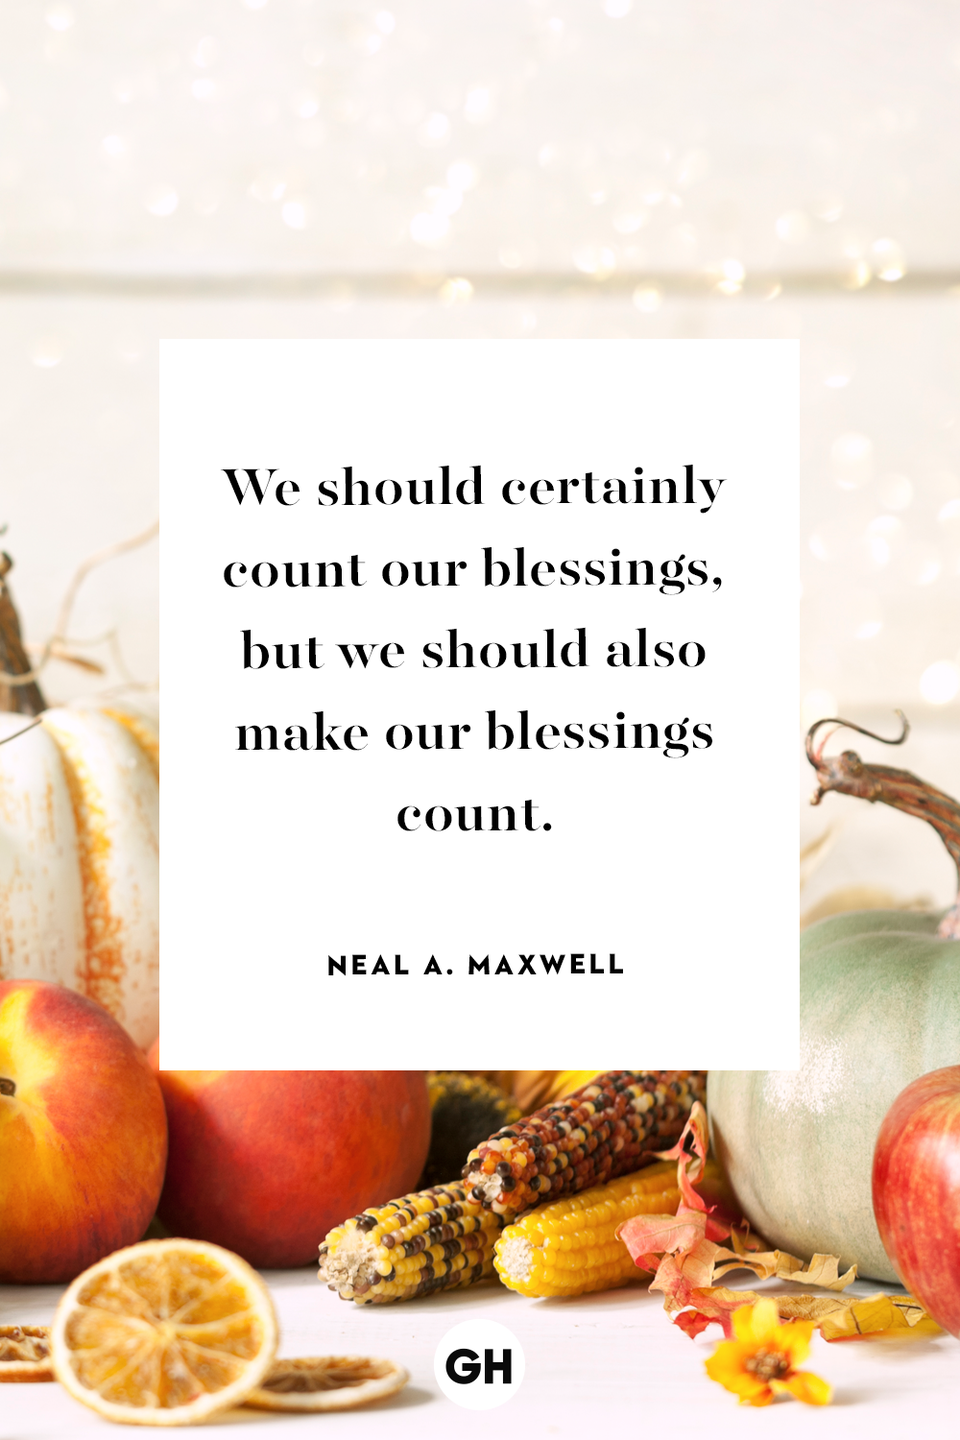 <p>We should certainly count our blessings, but we should also make our blessings count.</p>